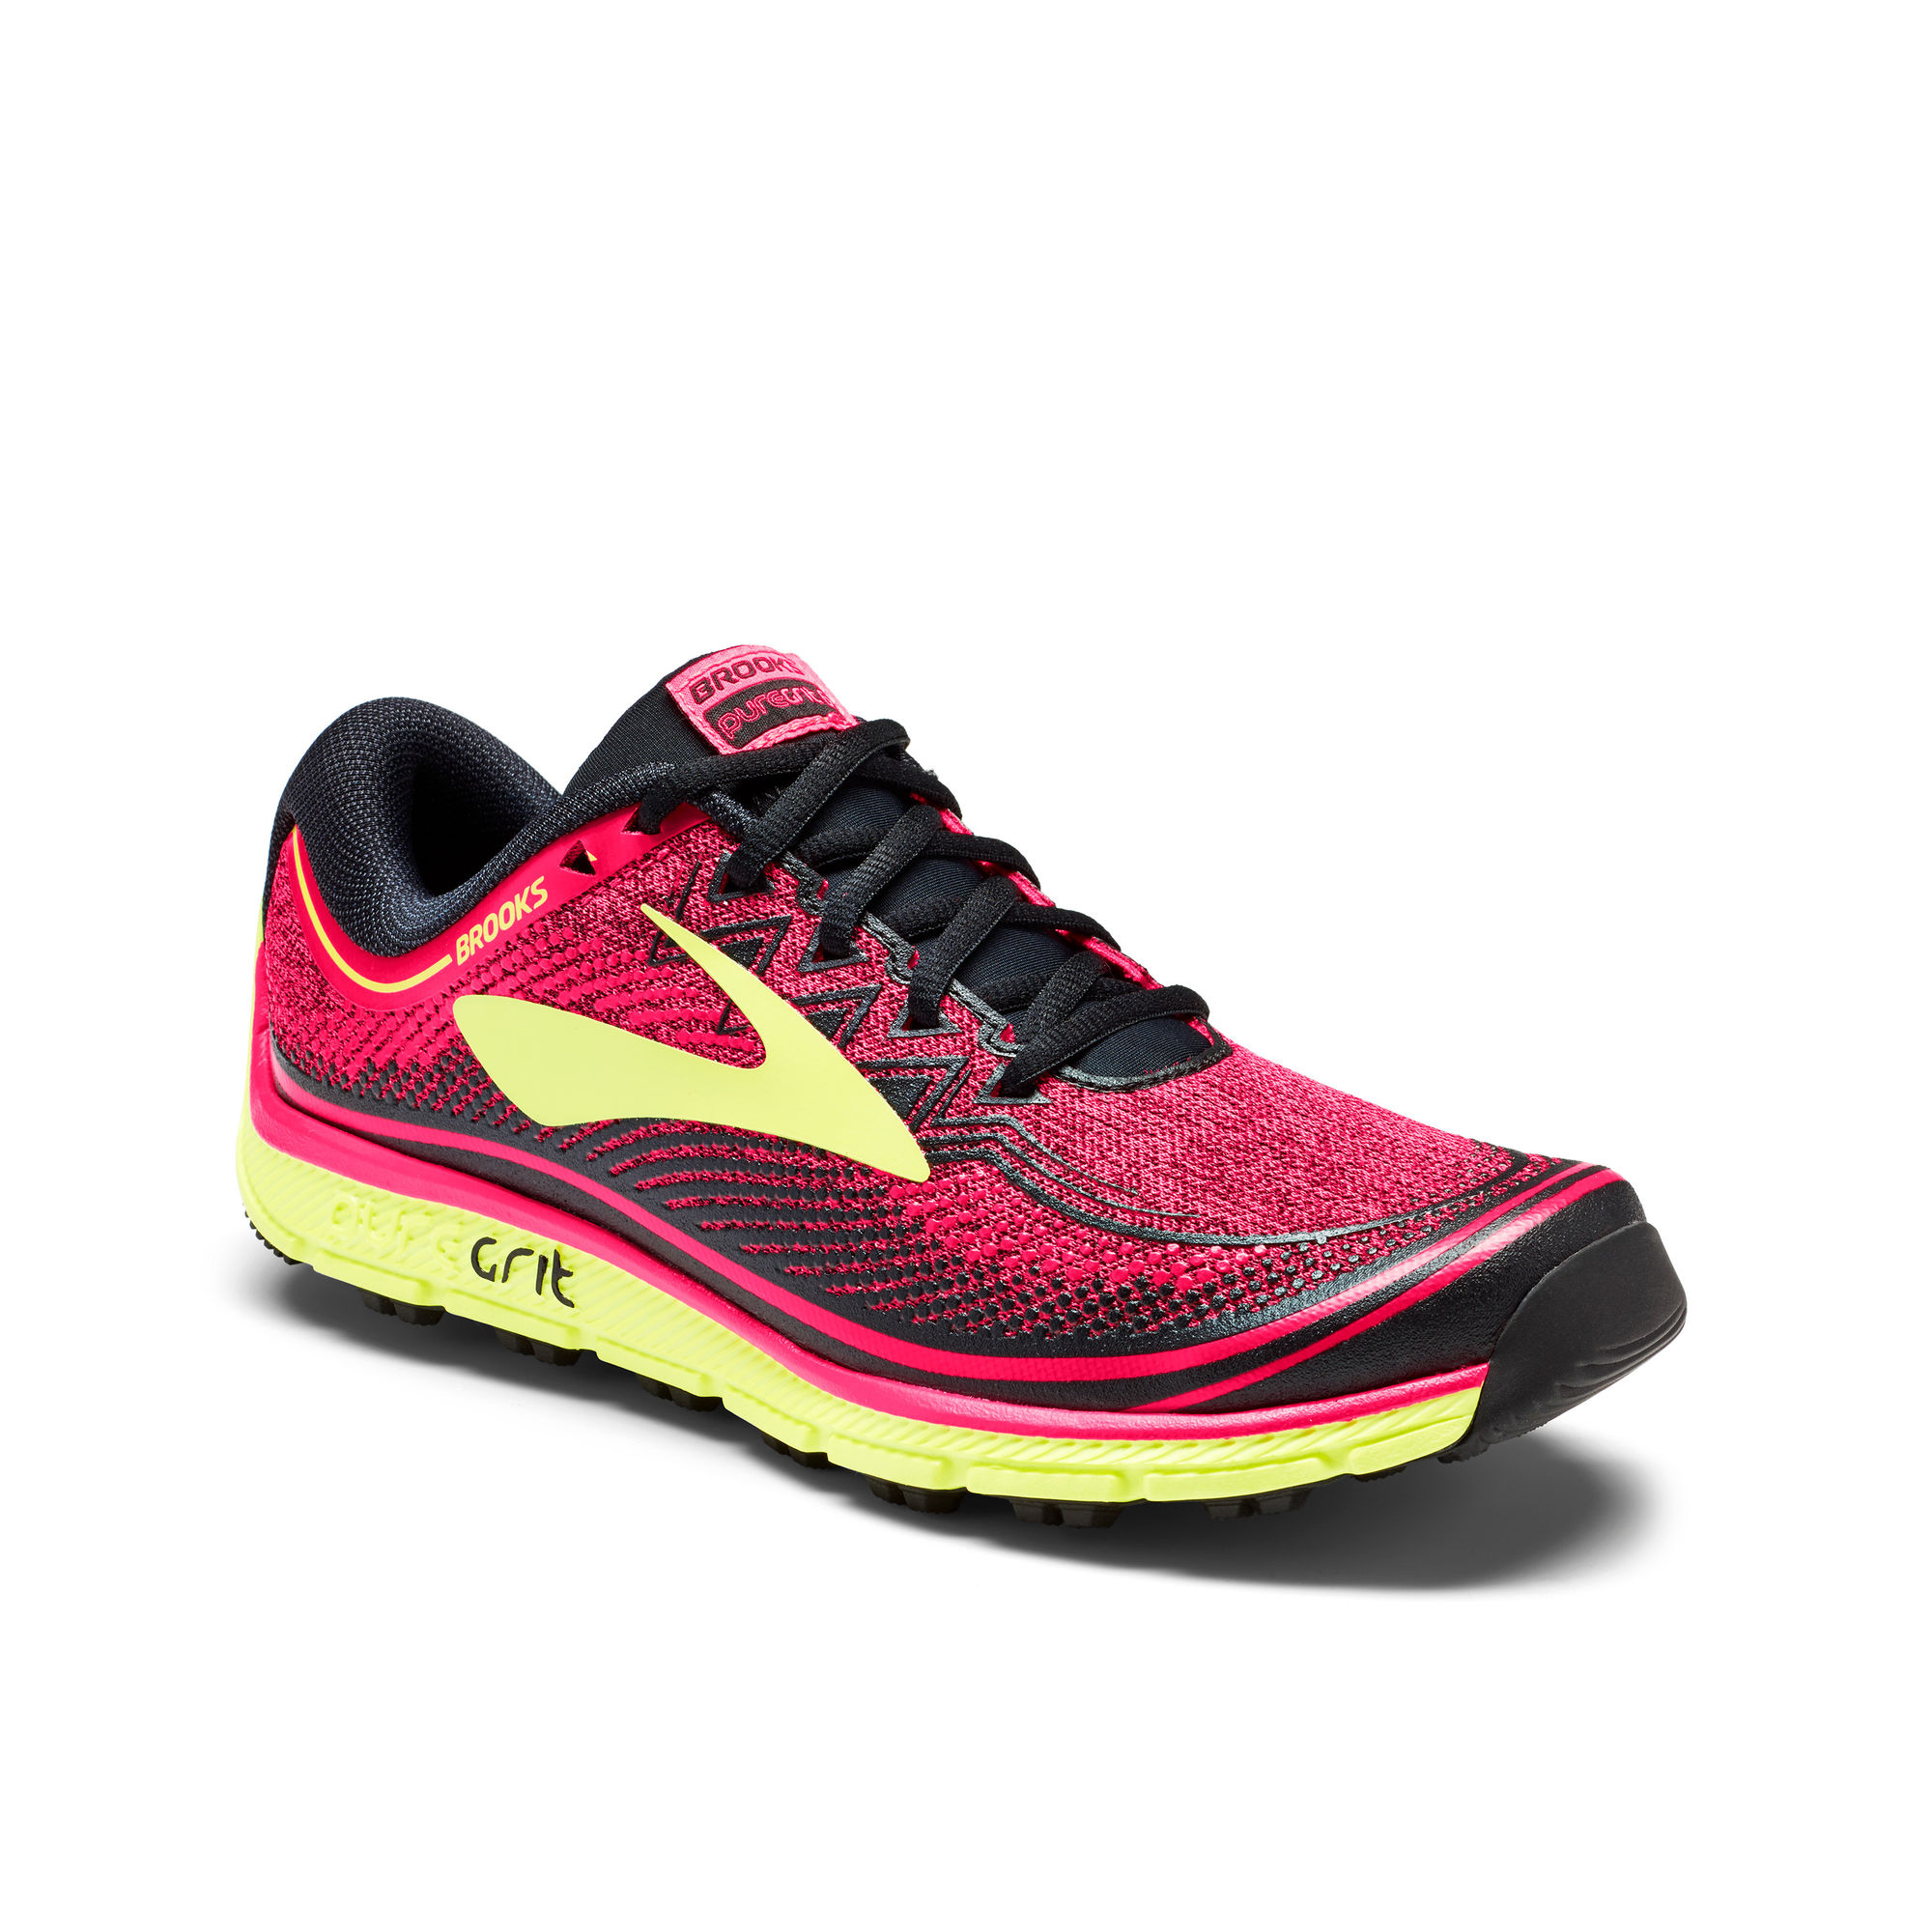 Brooks Lady PureGrit 6 in Pink Nightlife